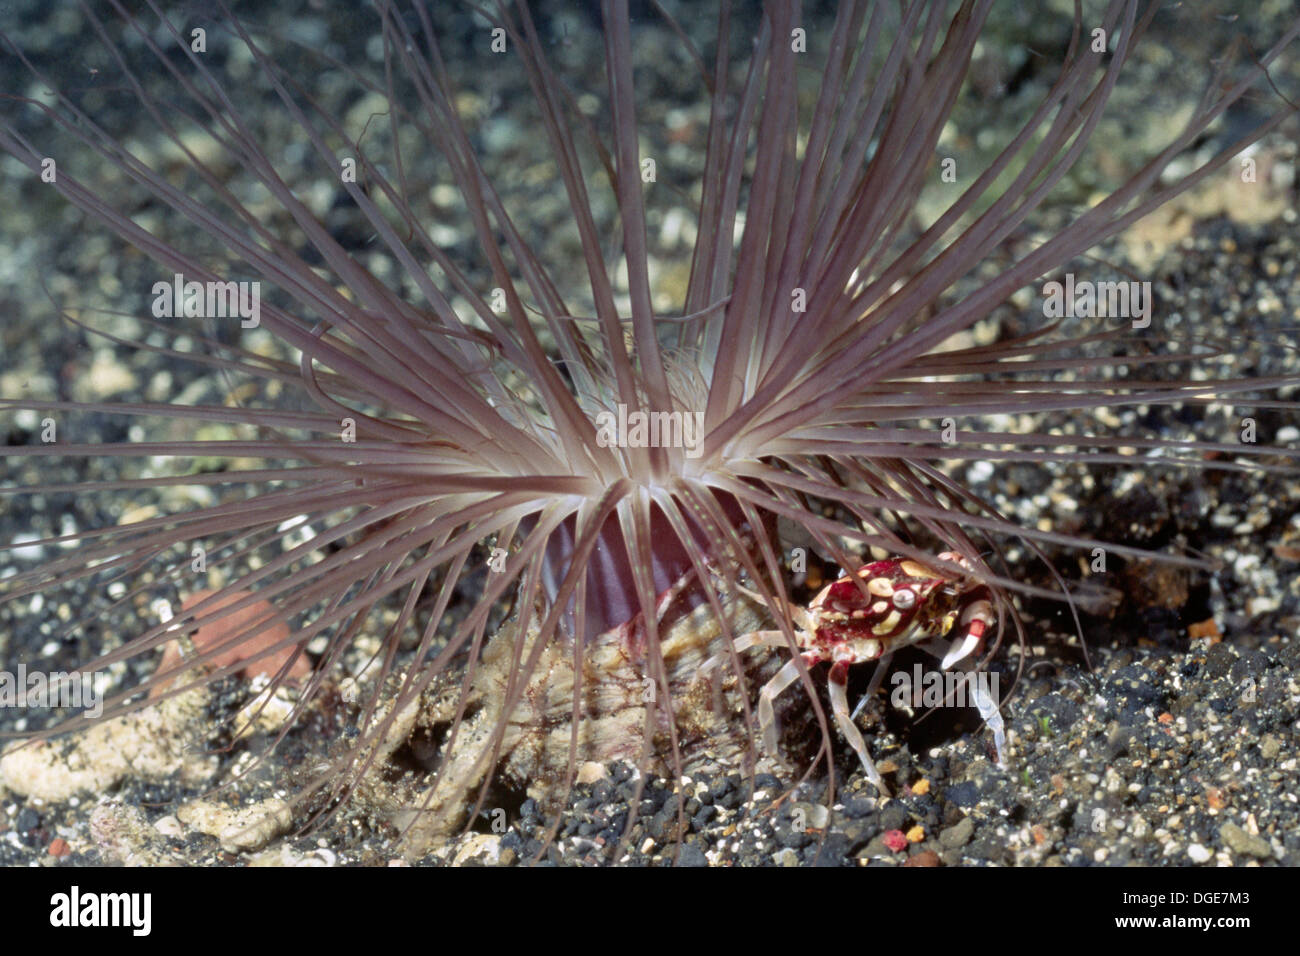 Harlequin Swimming Crab lives with Tube-Dwelling Anemone.(Lissocarcinus laevis)).Solomon Islands. - Stock Image